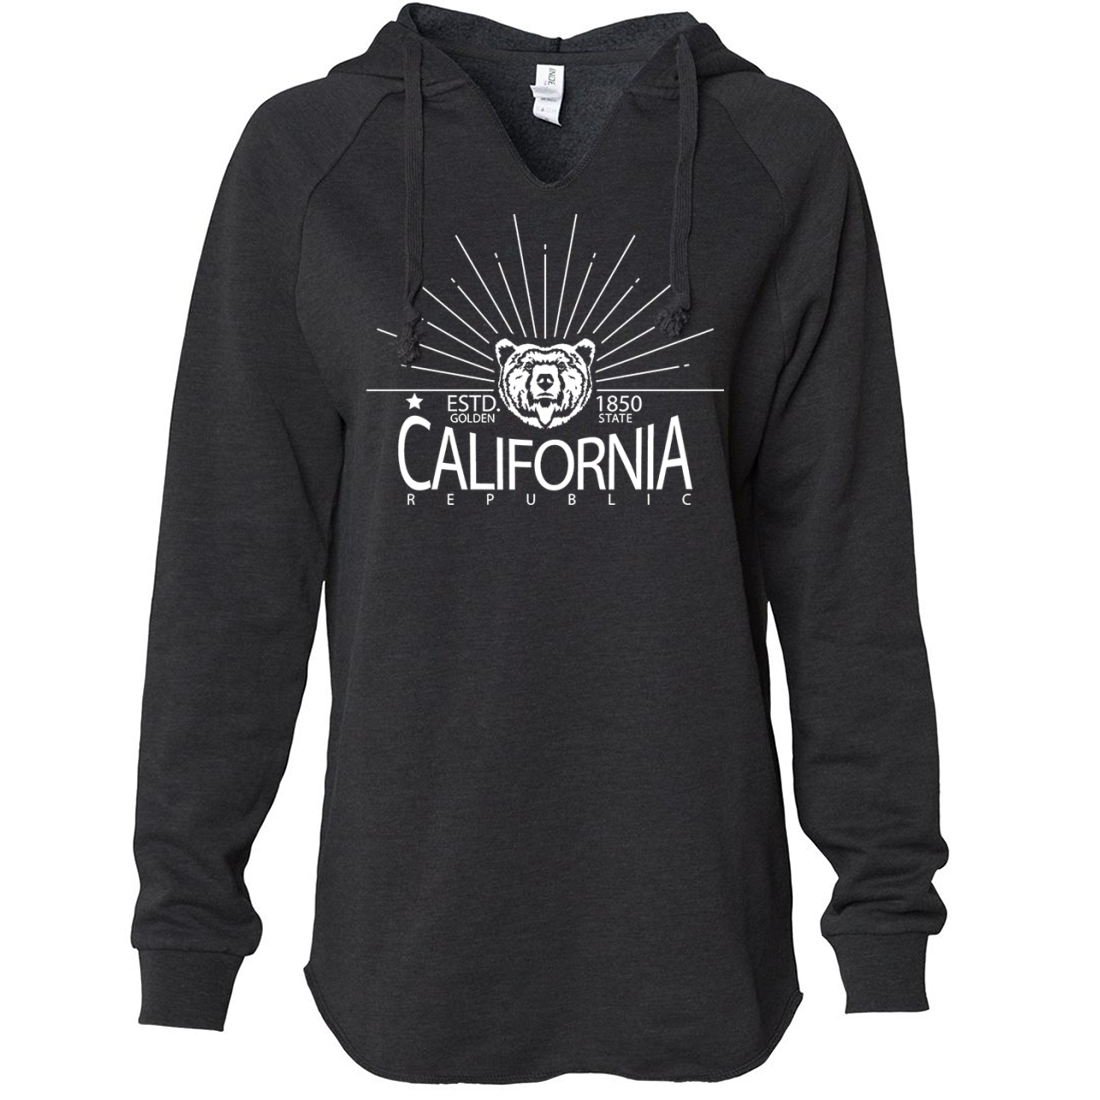 California Golden State White Print Women's Soft Hooded Pullover